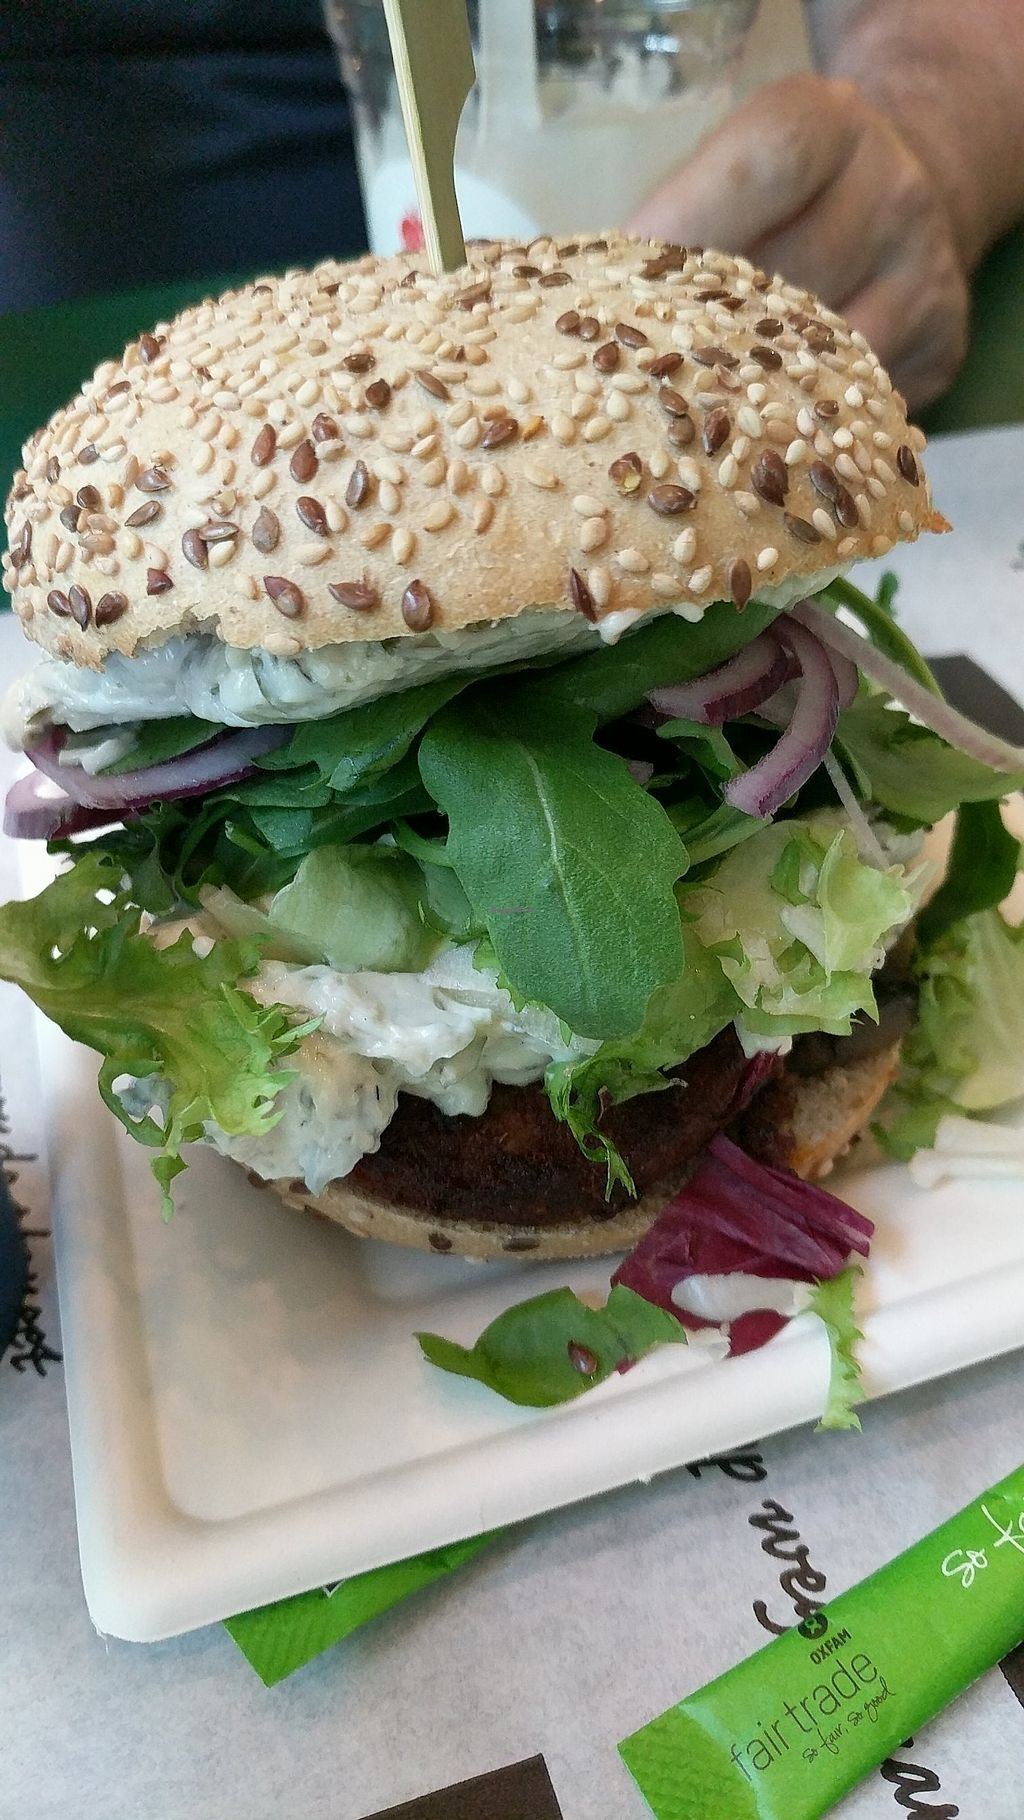 """Photo of Greenway - St Gilles  by <a href=""""/members/profile/callyisprobablyacat"""">callyisprobablyacat</a> <br/>Vegan sweet red pepper burger <br/> September 3, 2017  - <a href='/contact/abuse/image/55591/300458'>Report</a>"""